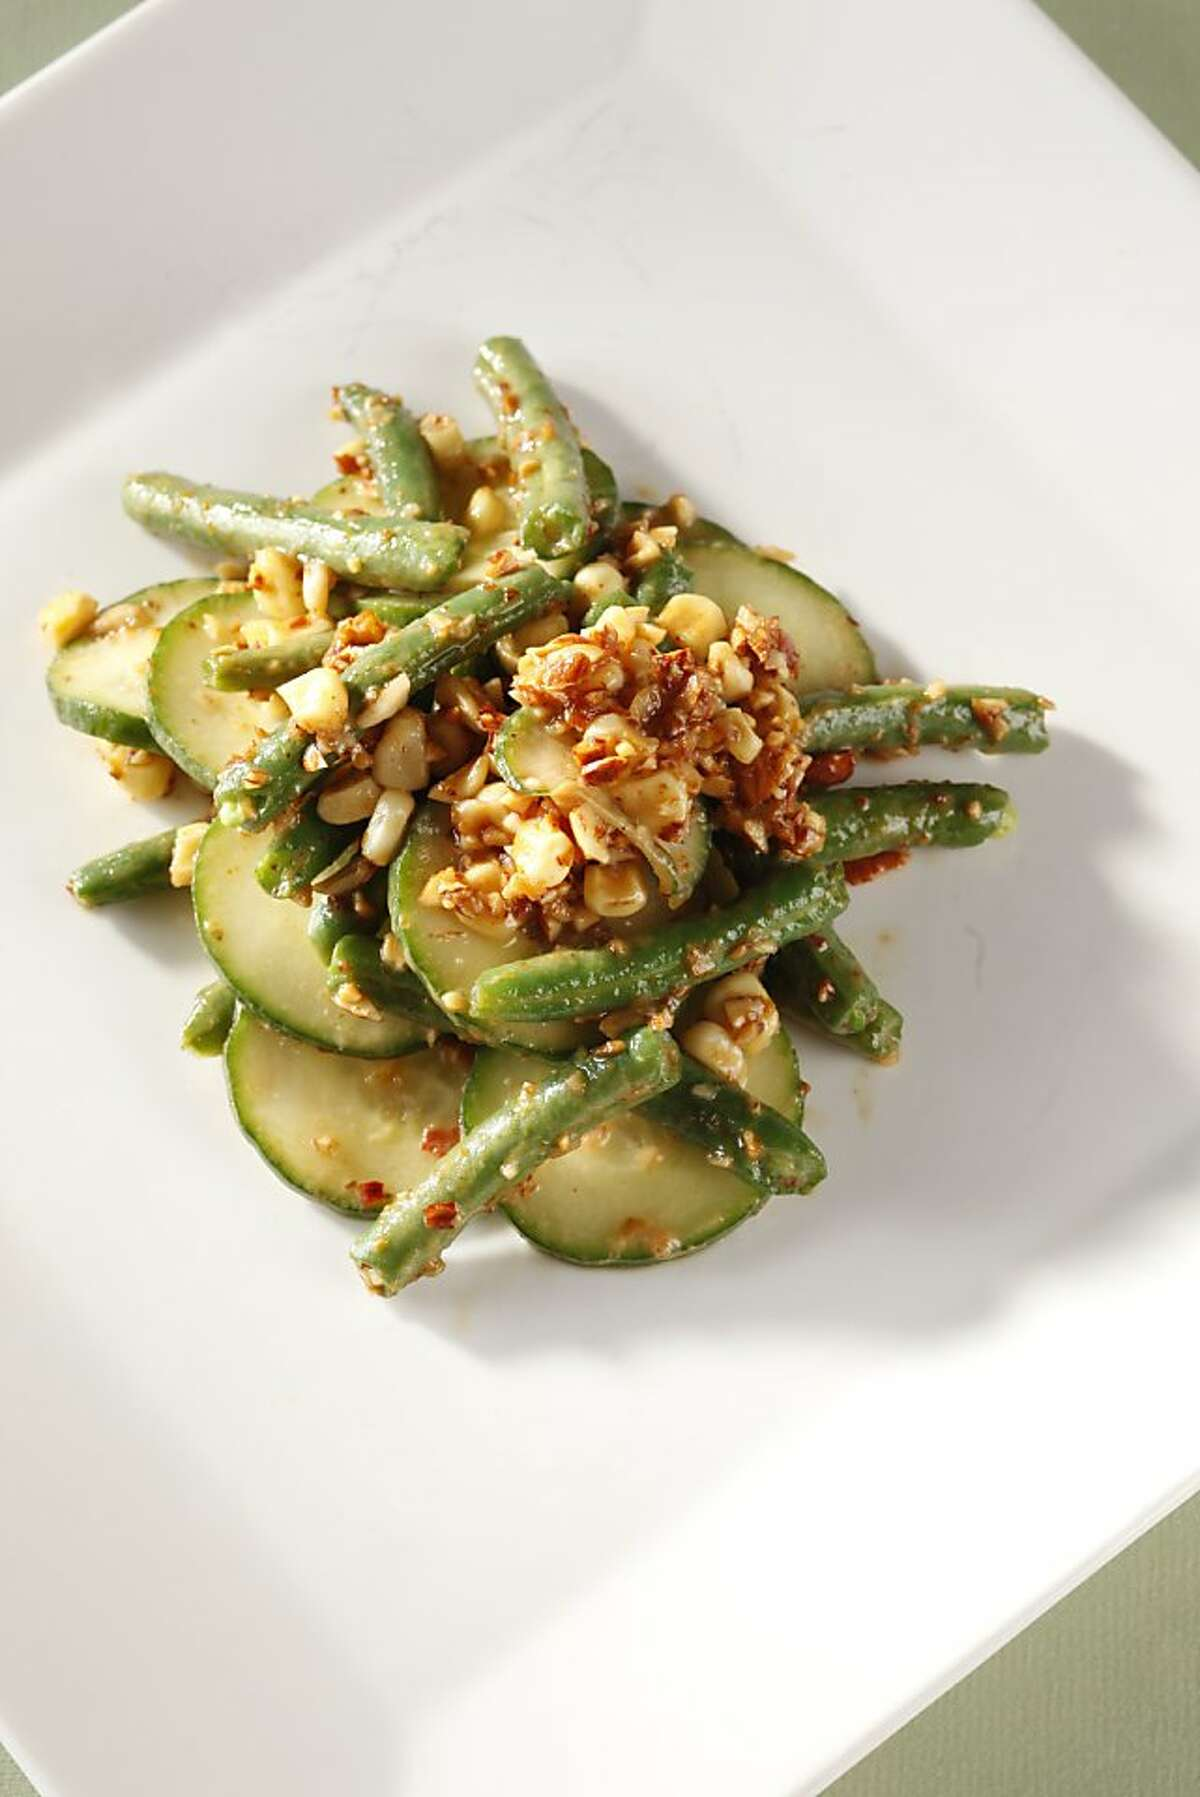 Thai-inspired green bean and corn salad as seen in San Francisco, California, on Wednesday, August 10, 2011. Food styled by Rochelle Vurek.